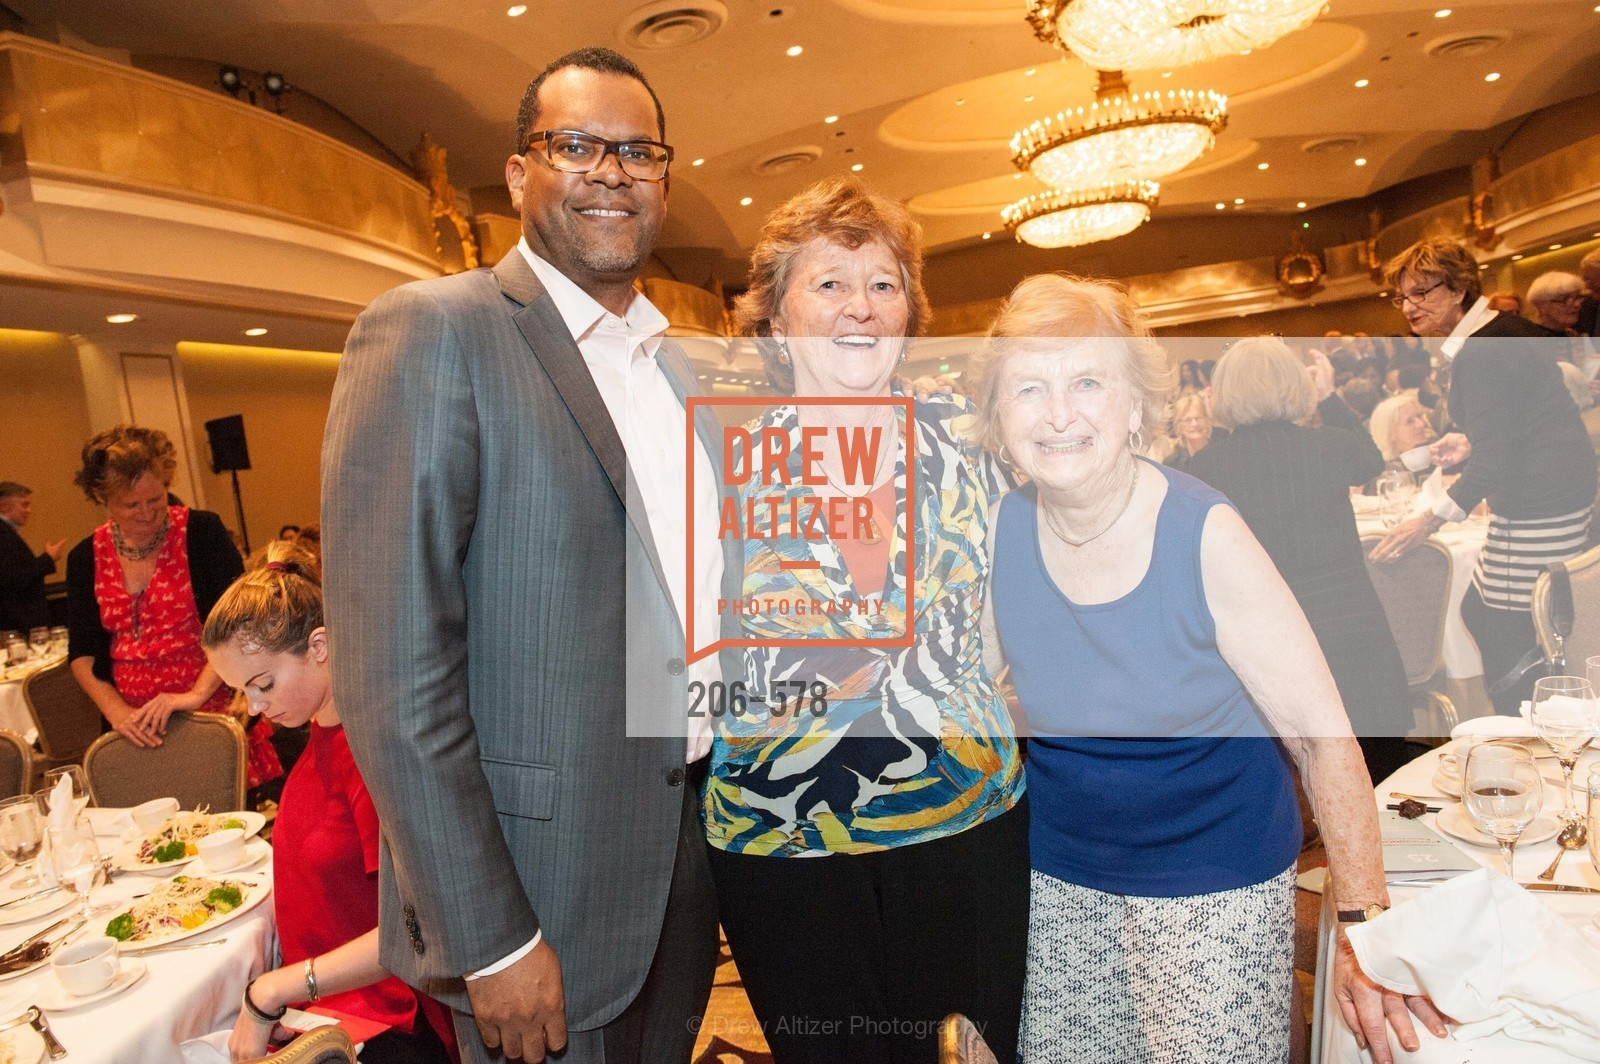 Fred Blackwell, Martha Ryan, Liz McCarthy, HOMELESS PRENATAL Annual Luncheon 2014, US, October 1st, 2014,Drew Altizer, Drew Altizer Photography, full-service event agency, private events, San Francisco photographer, photographer California